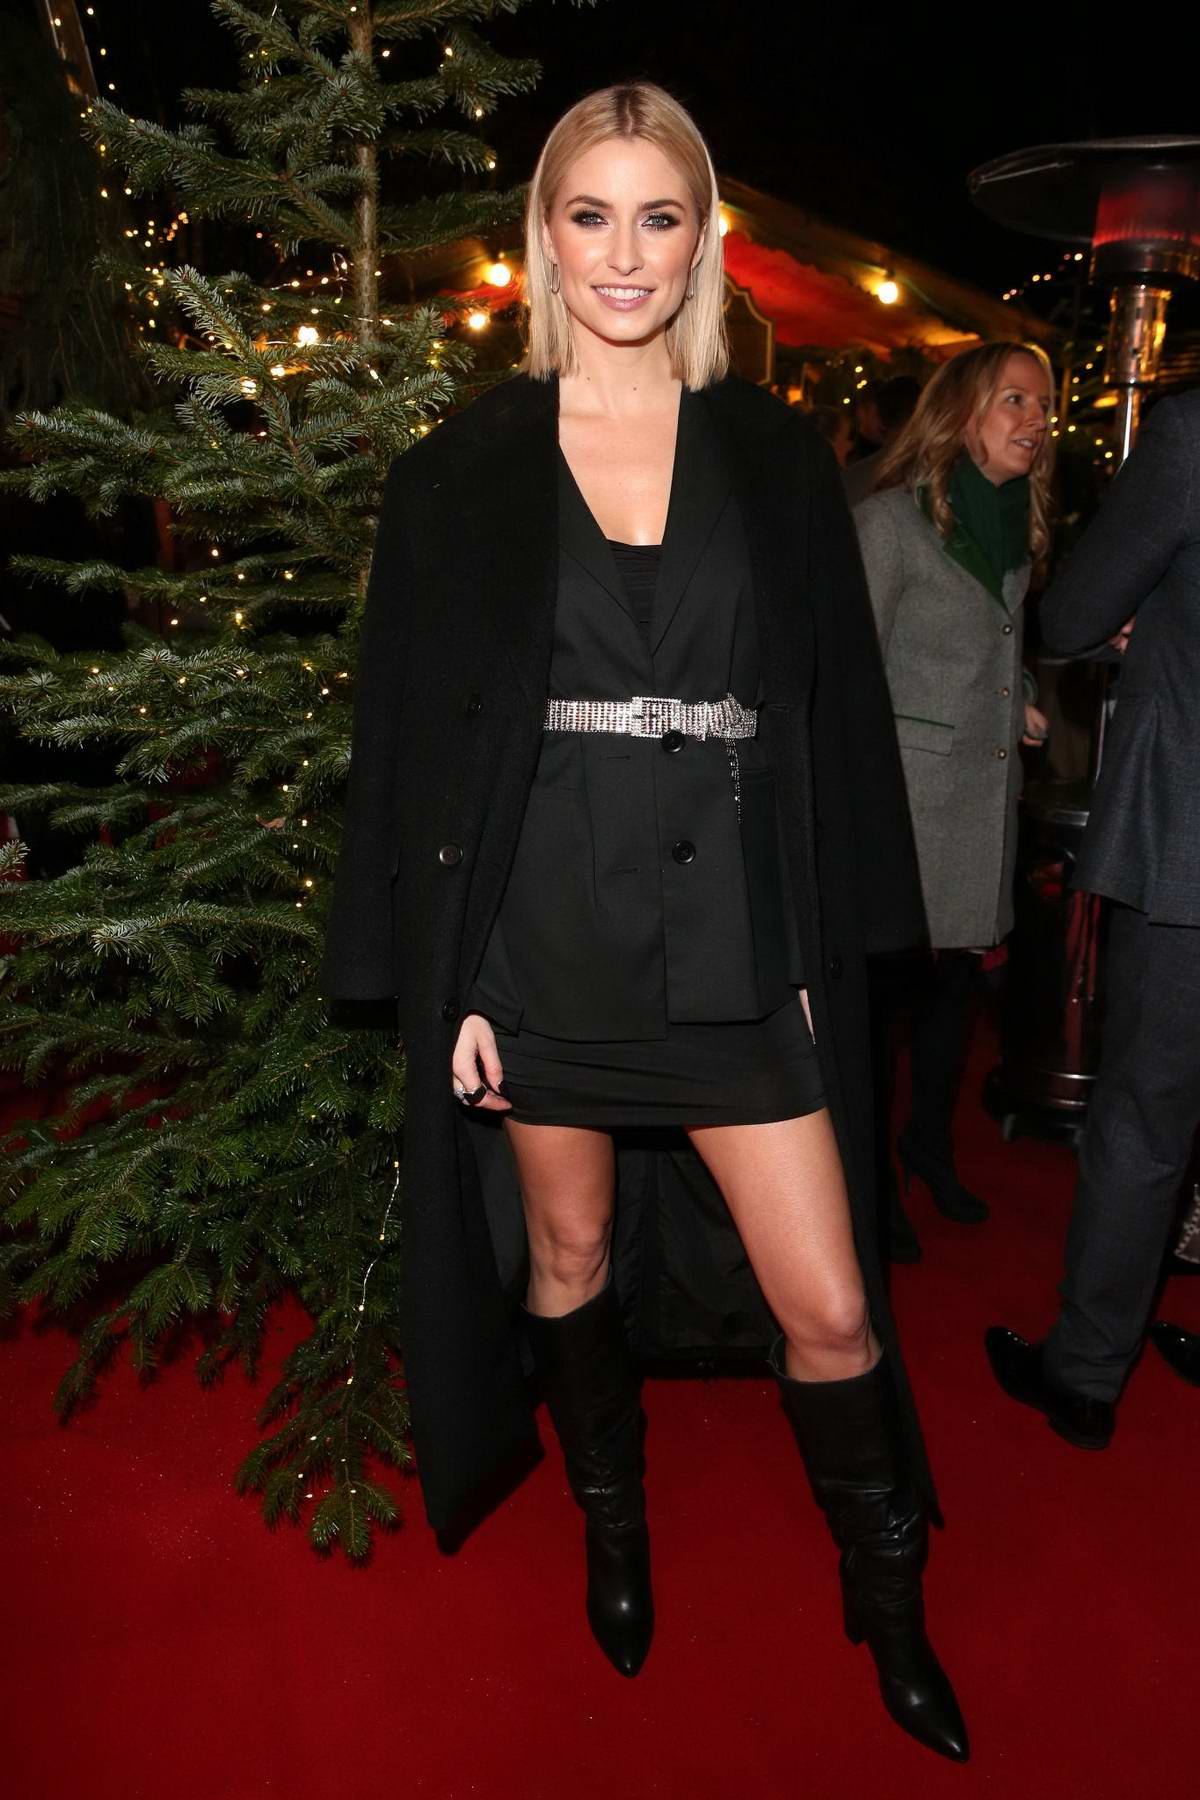 Lena Gercke attends Lena Gercke X ABOUT YOU Christmas Dinner & Party in Kitzbuehel, Austria